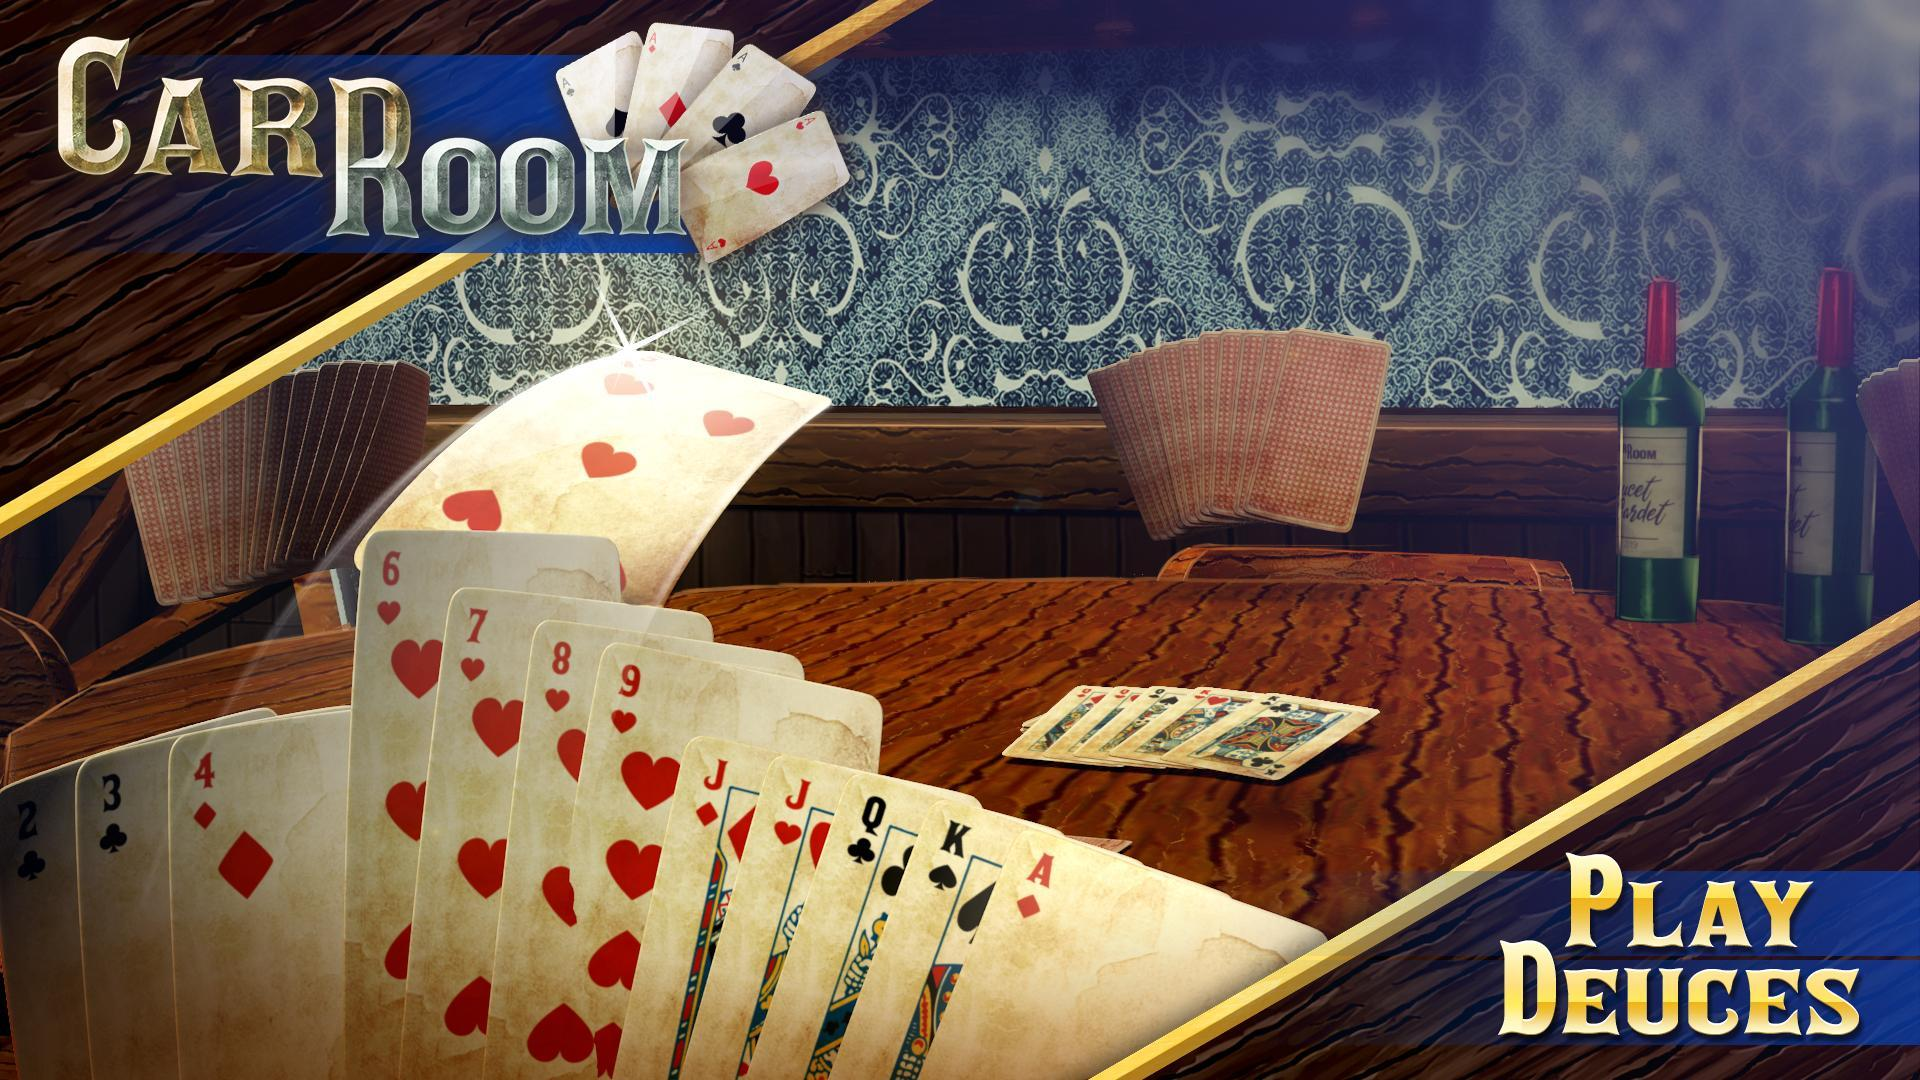 Card Room Deuces & Last Card, Playing Cards 1.2.3 Screenshot 6